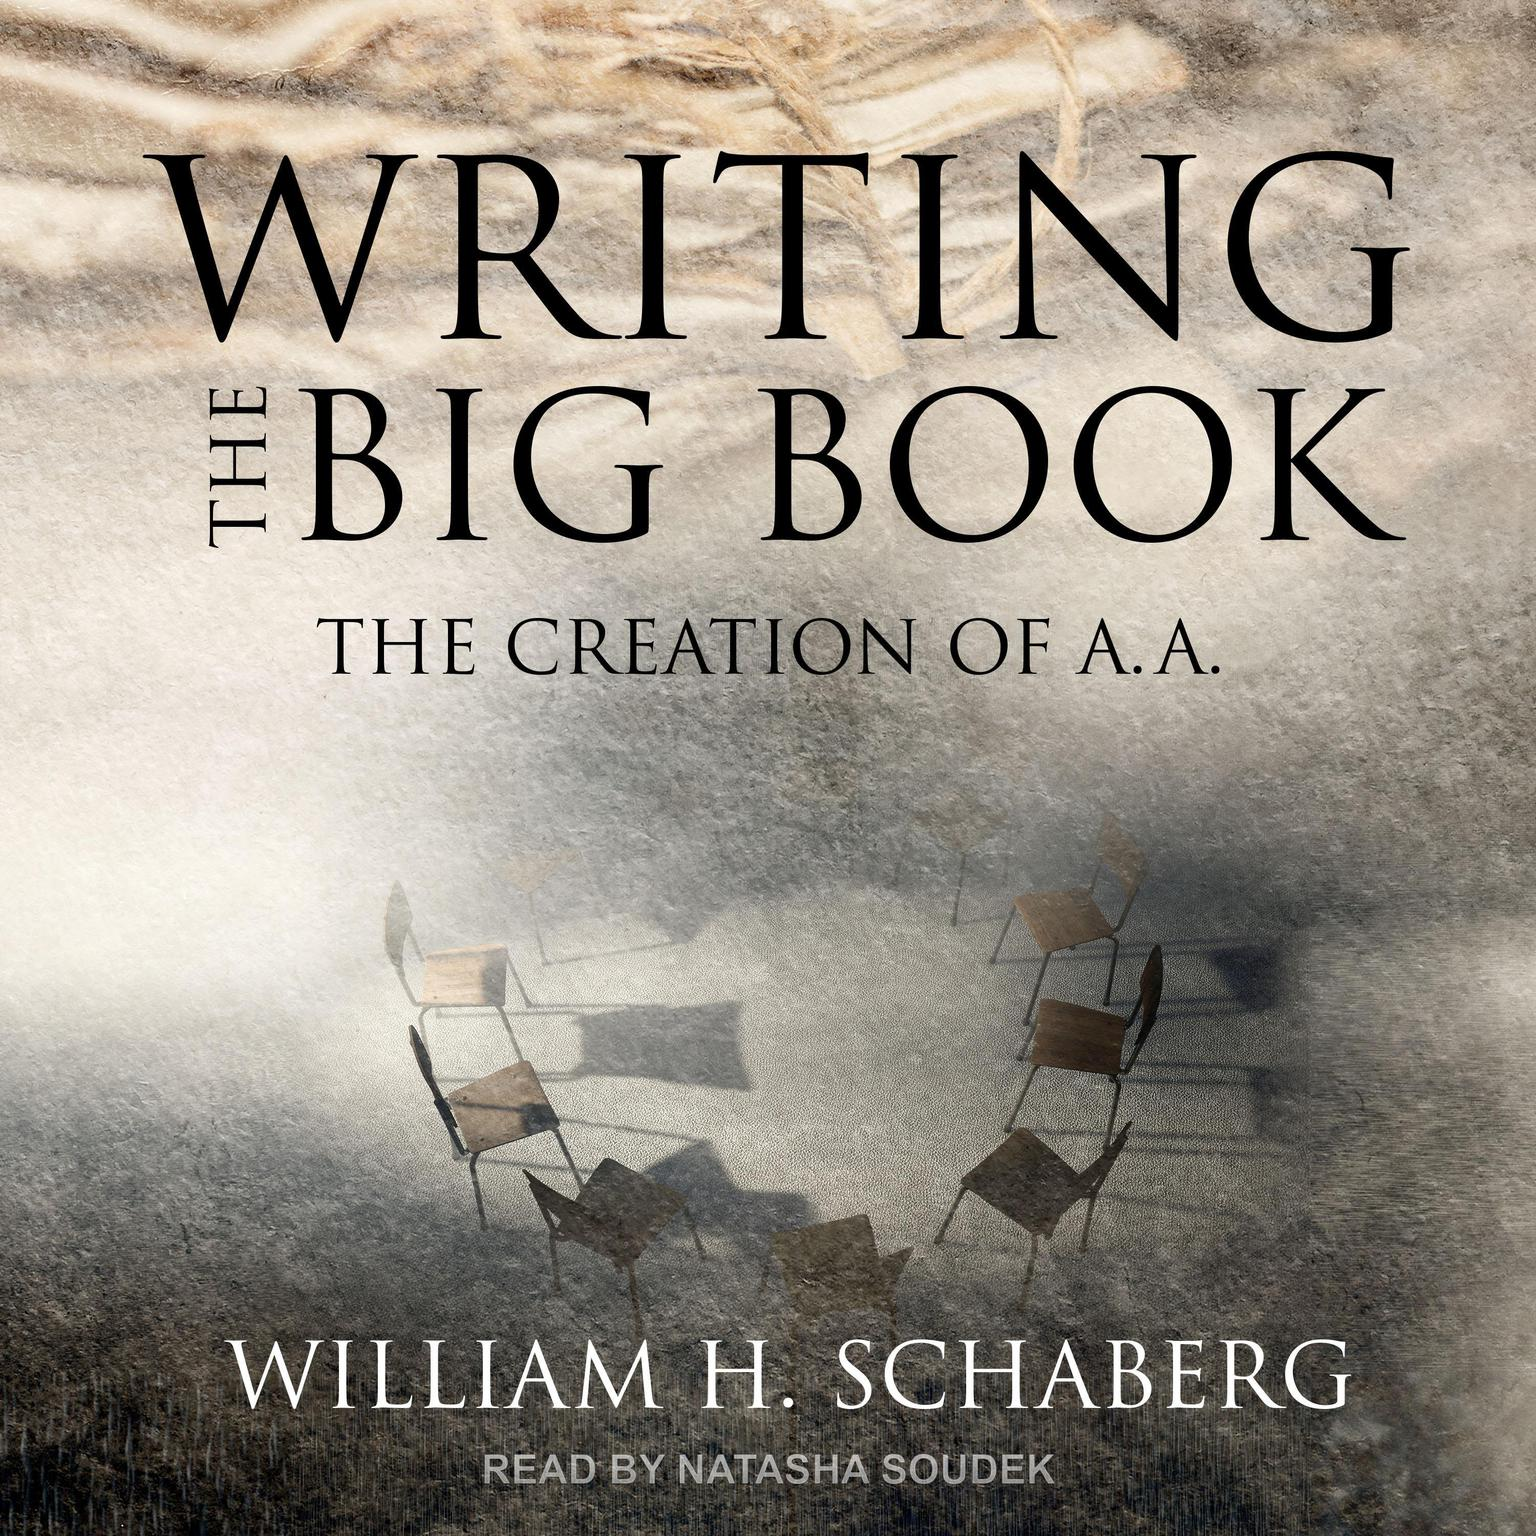 Printable Writing the Big Book: The Creation of A.A. Audiobook Cover Art